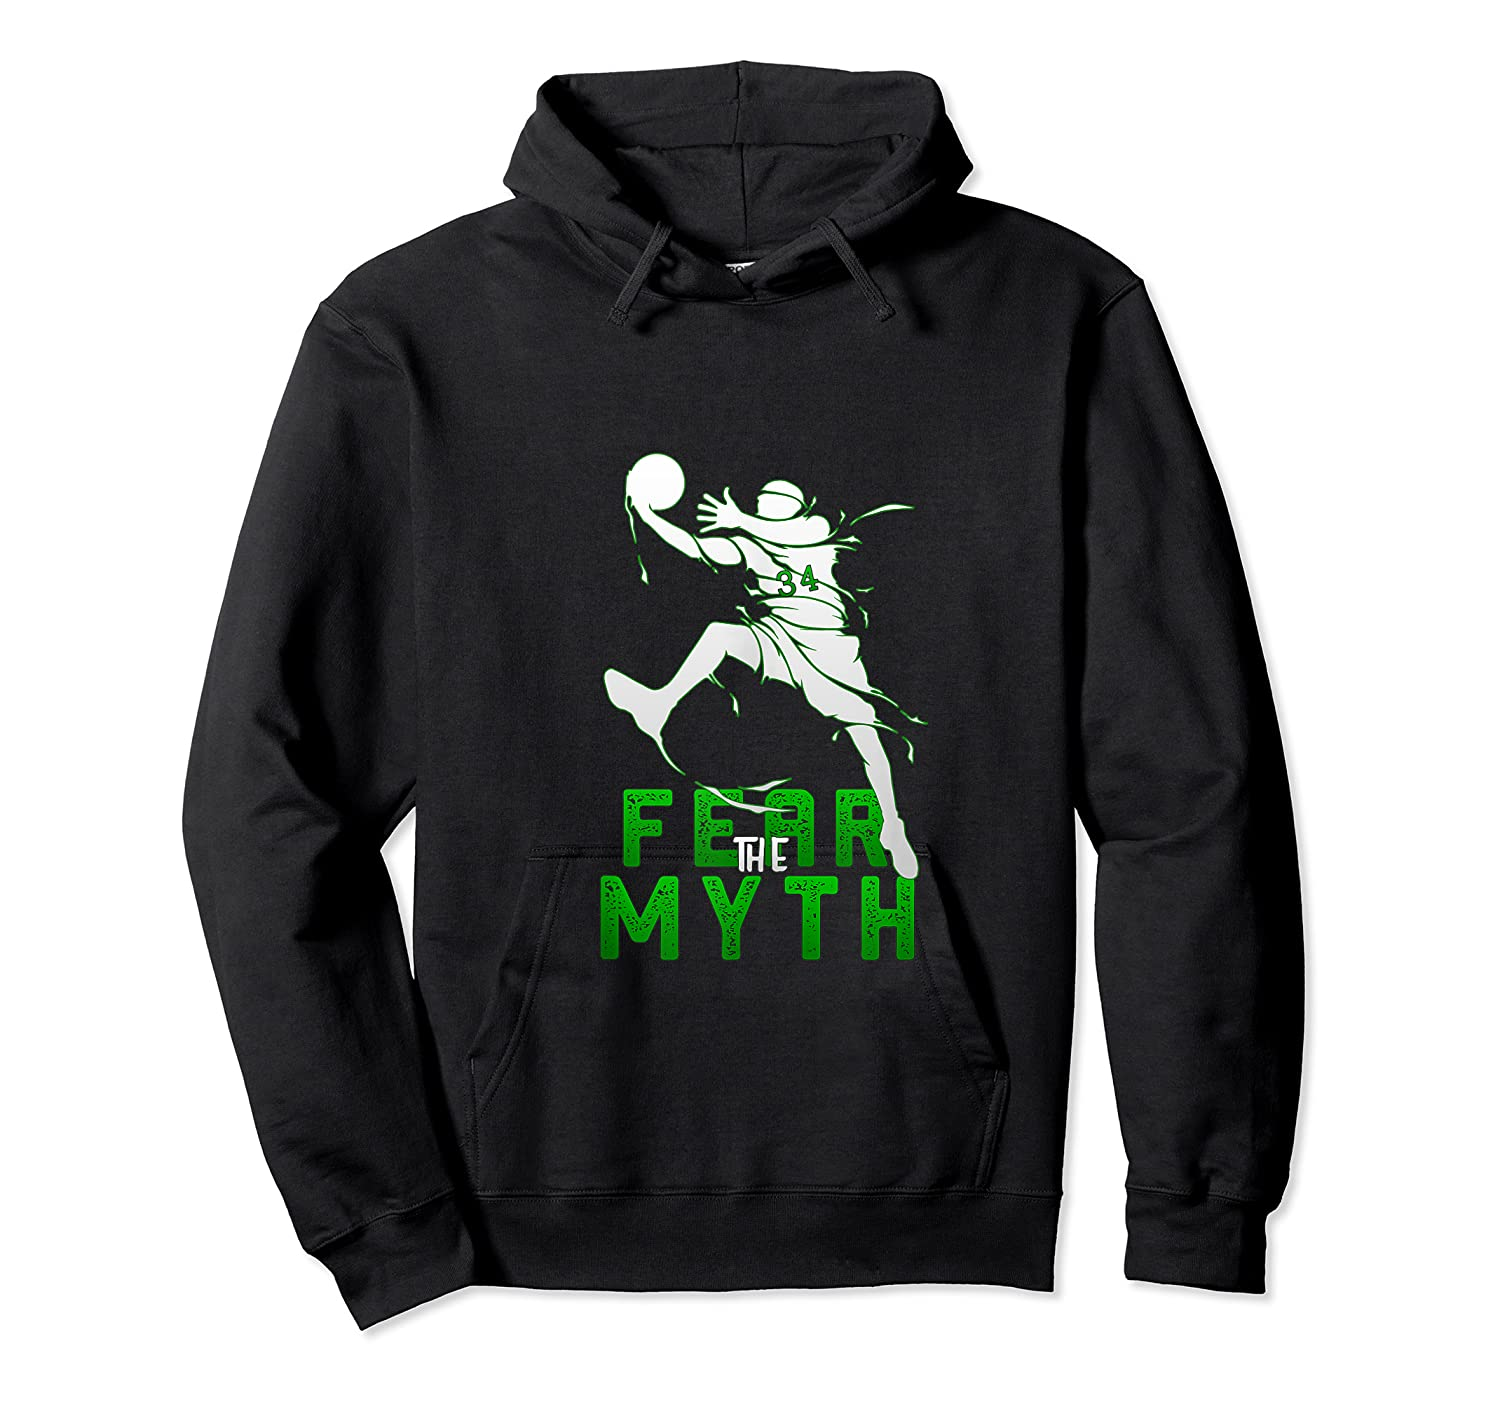 Gift For Milwaukee Basketball Bucks Fans 34 R The Myth Shirts Unisex Pullover Hoodie